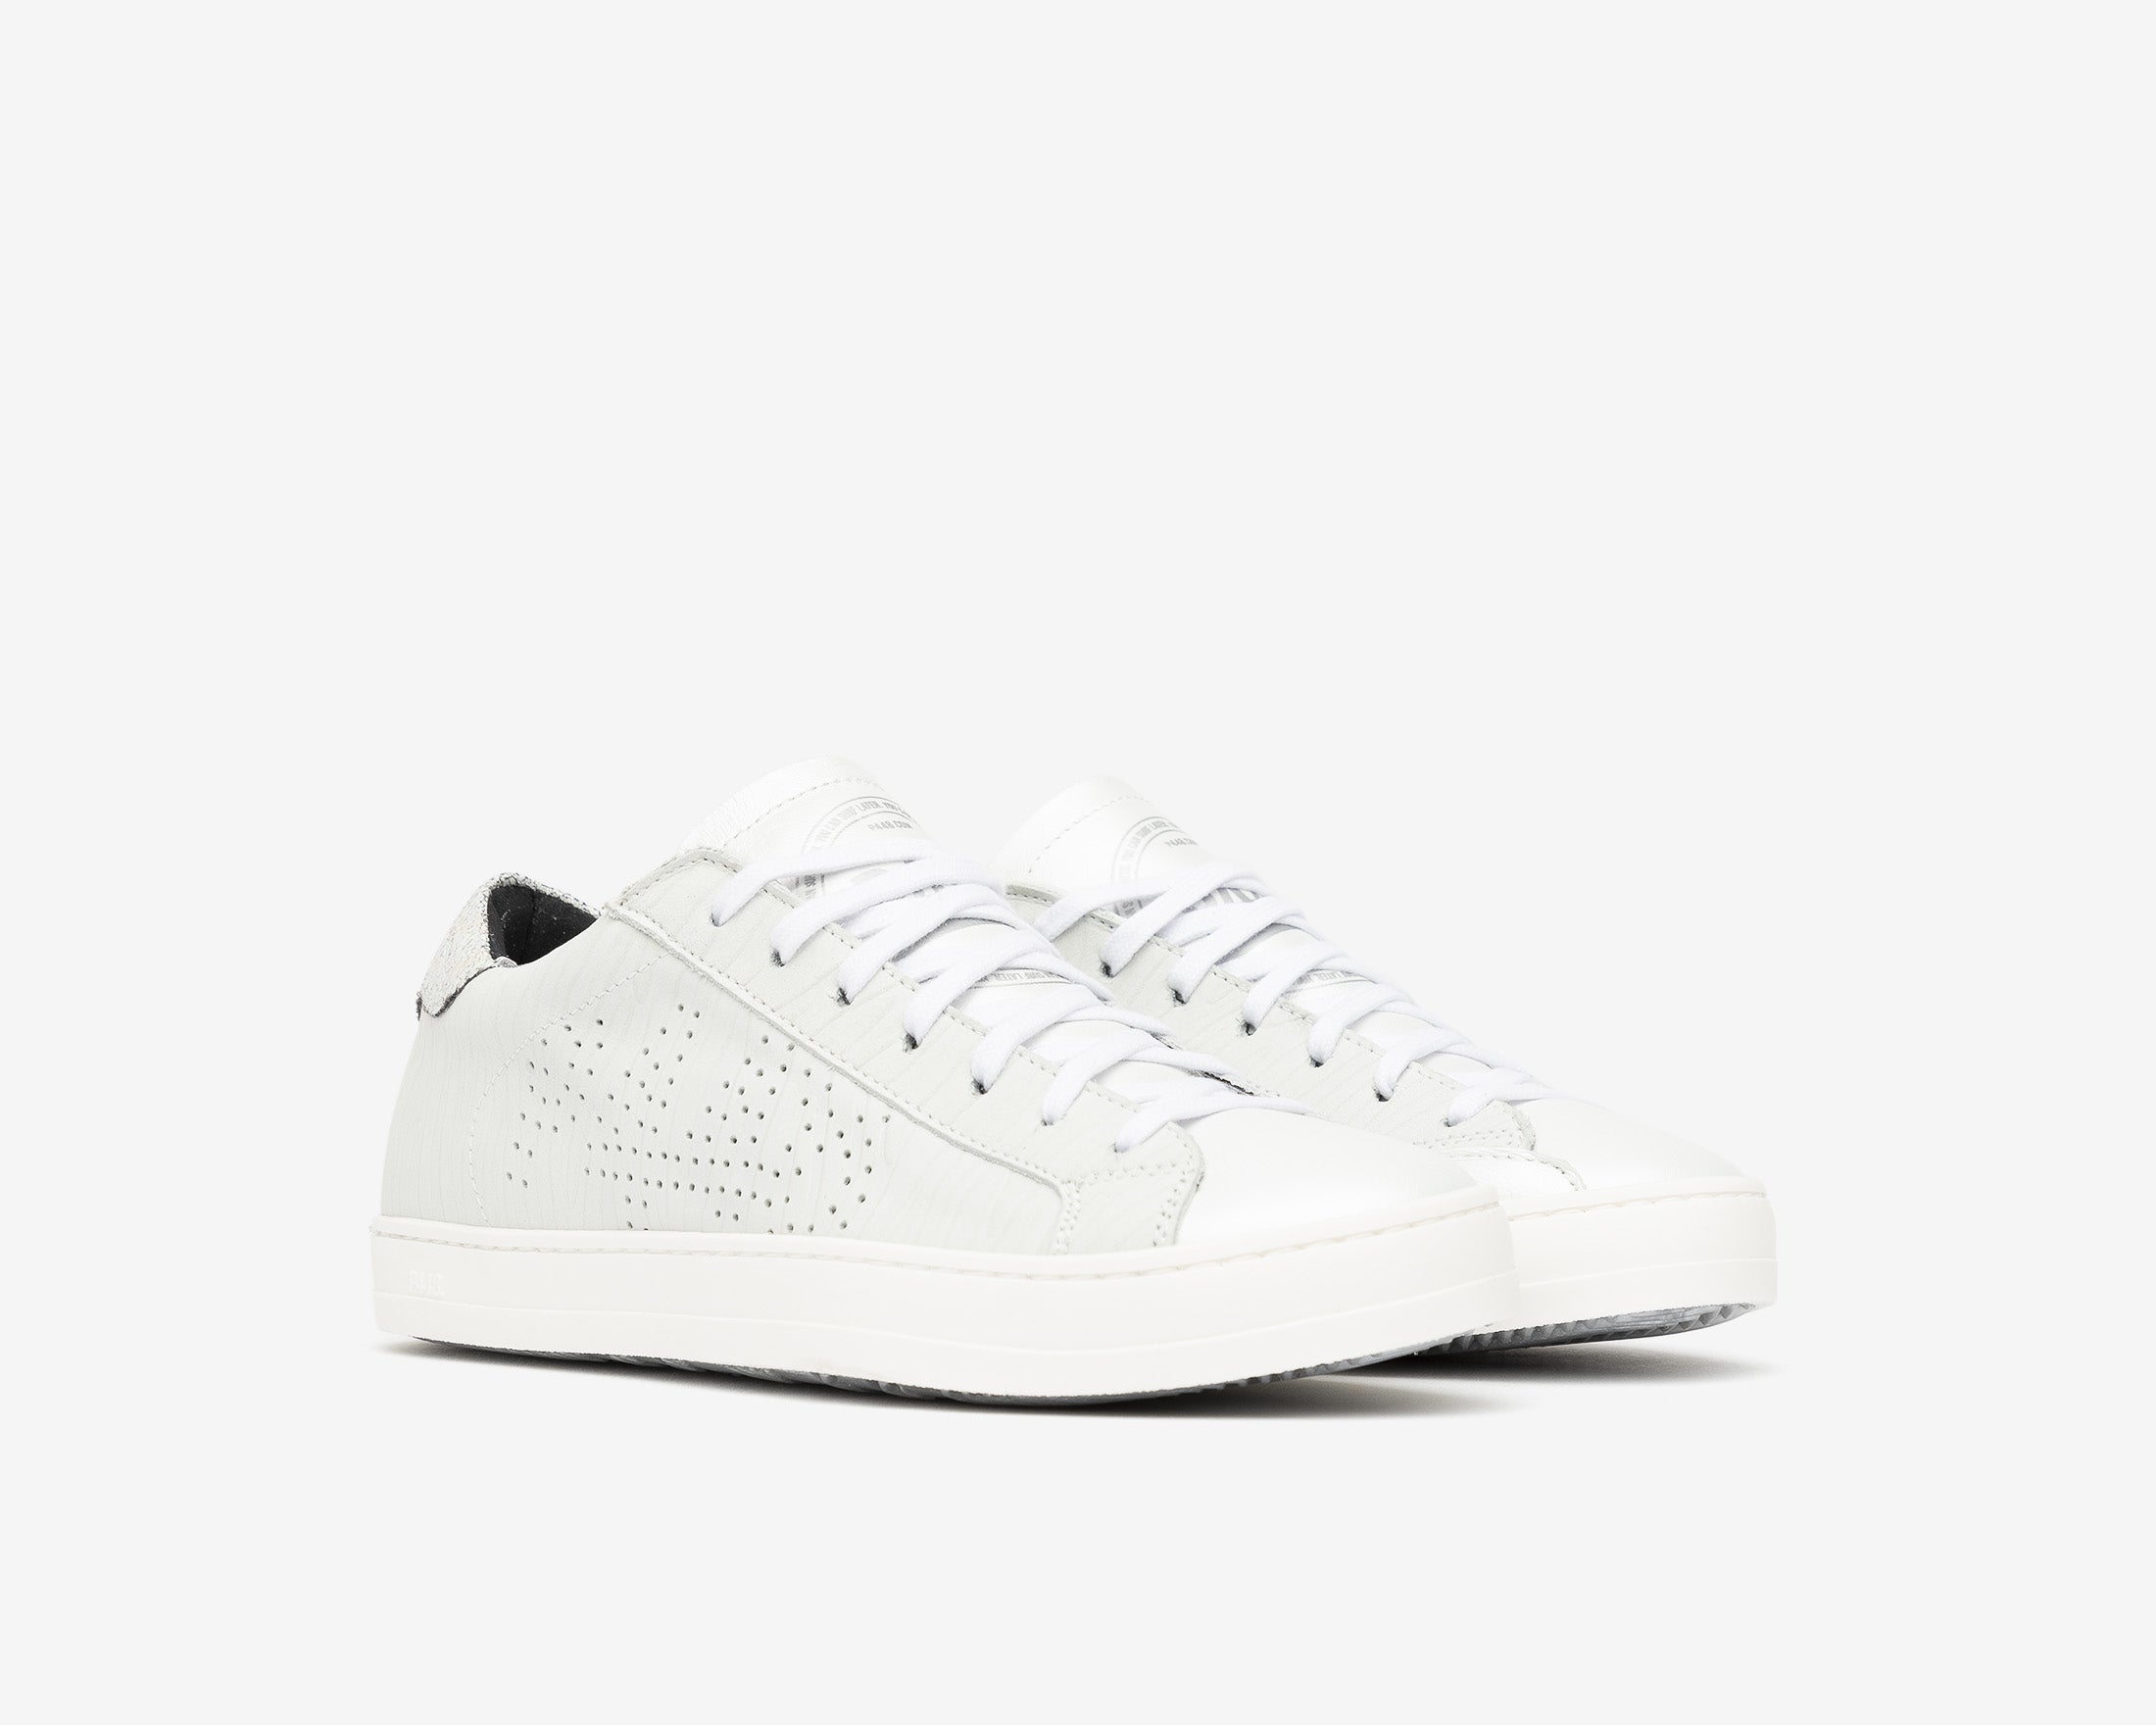 John Low-Top Sneaker in White Zebra/Beige - Side